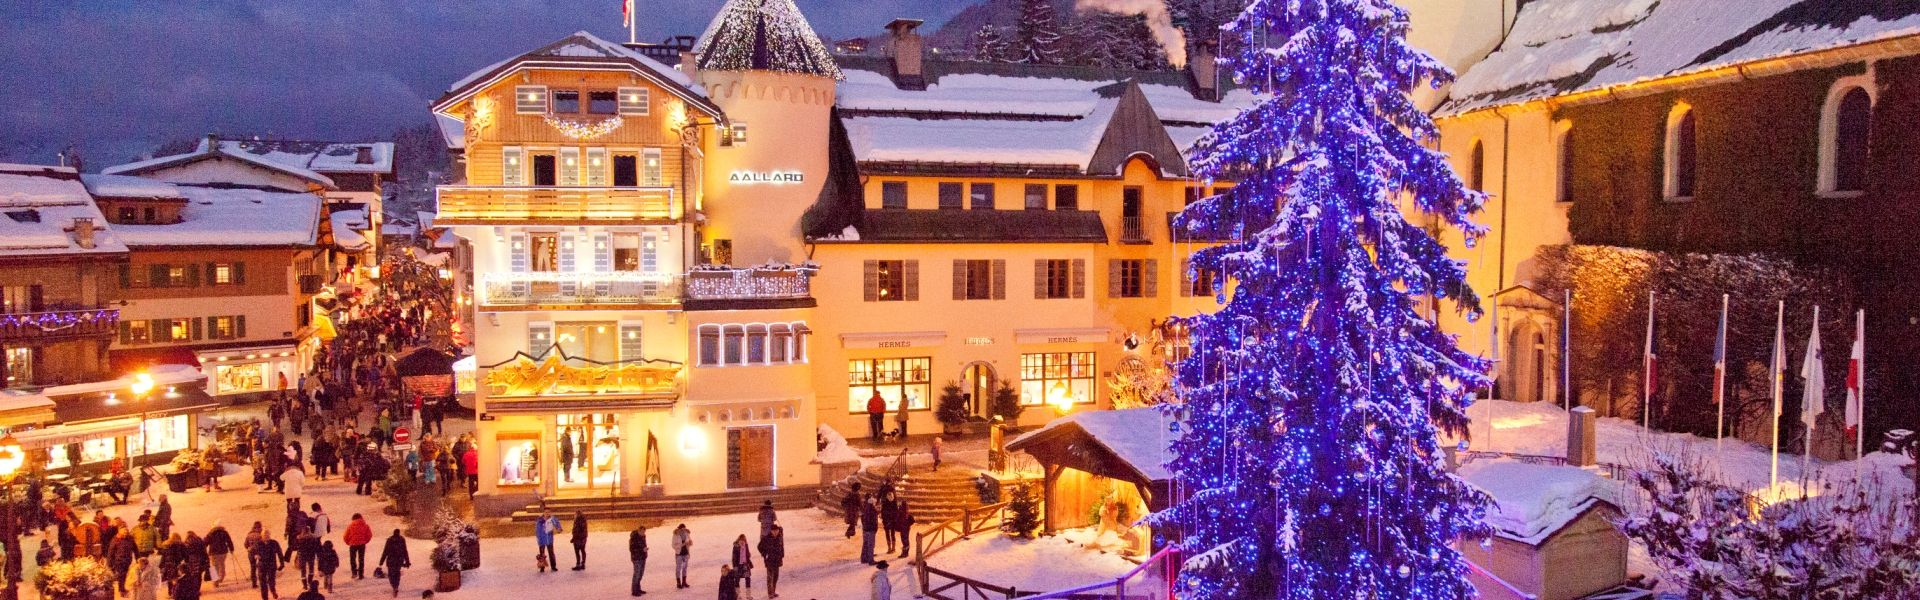 Megeve Town Square